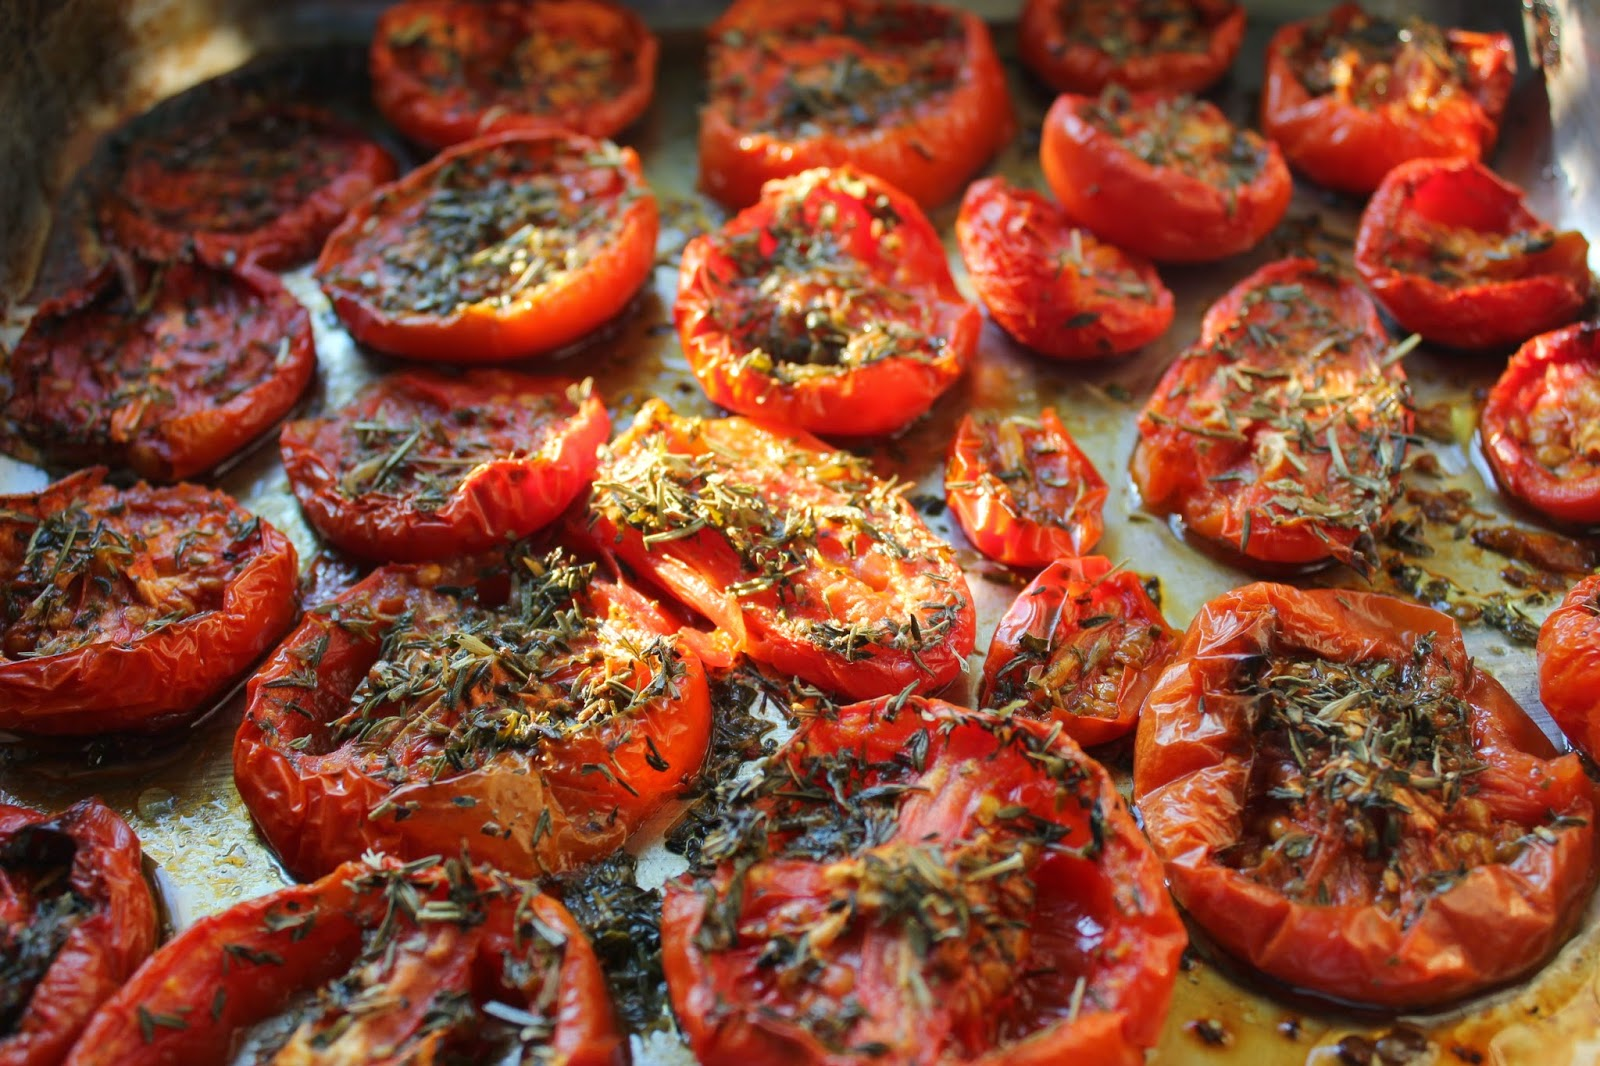 Home-made organic oven-dried tomatoes